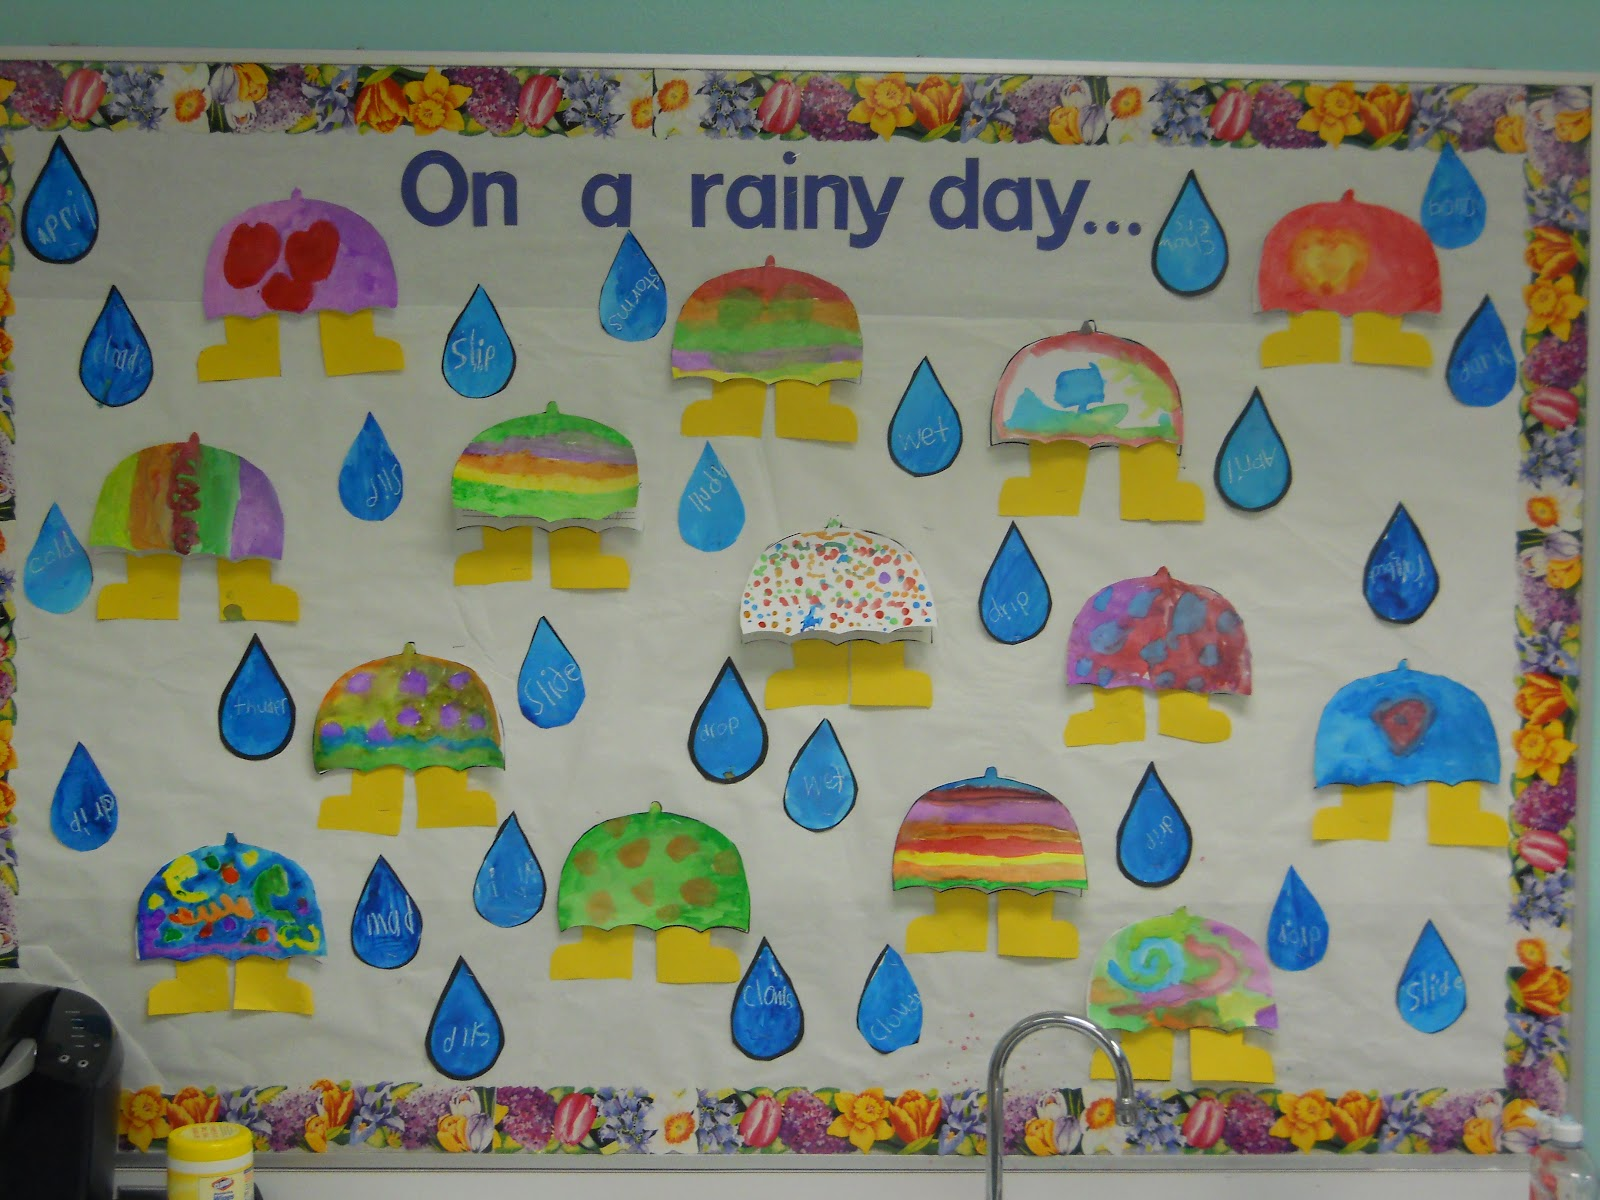 Mrs Ts First Grade Class On A Rainy Day On A Rainy Day